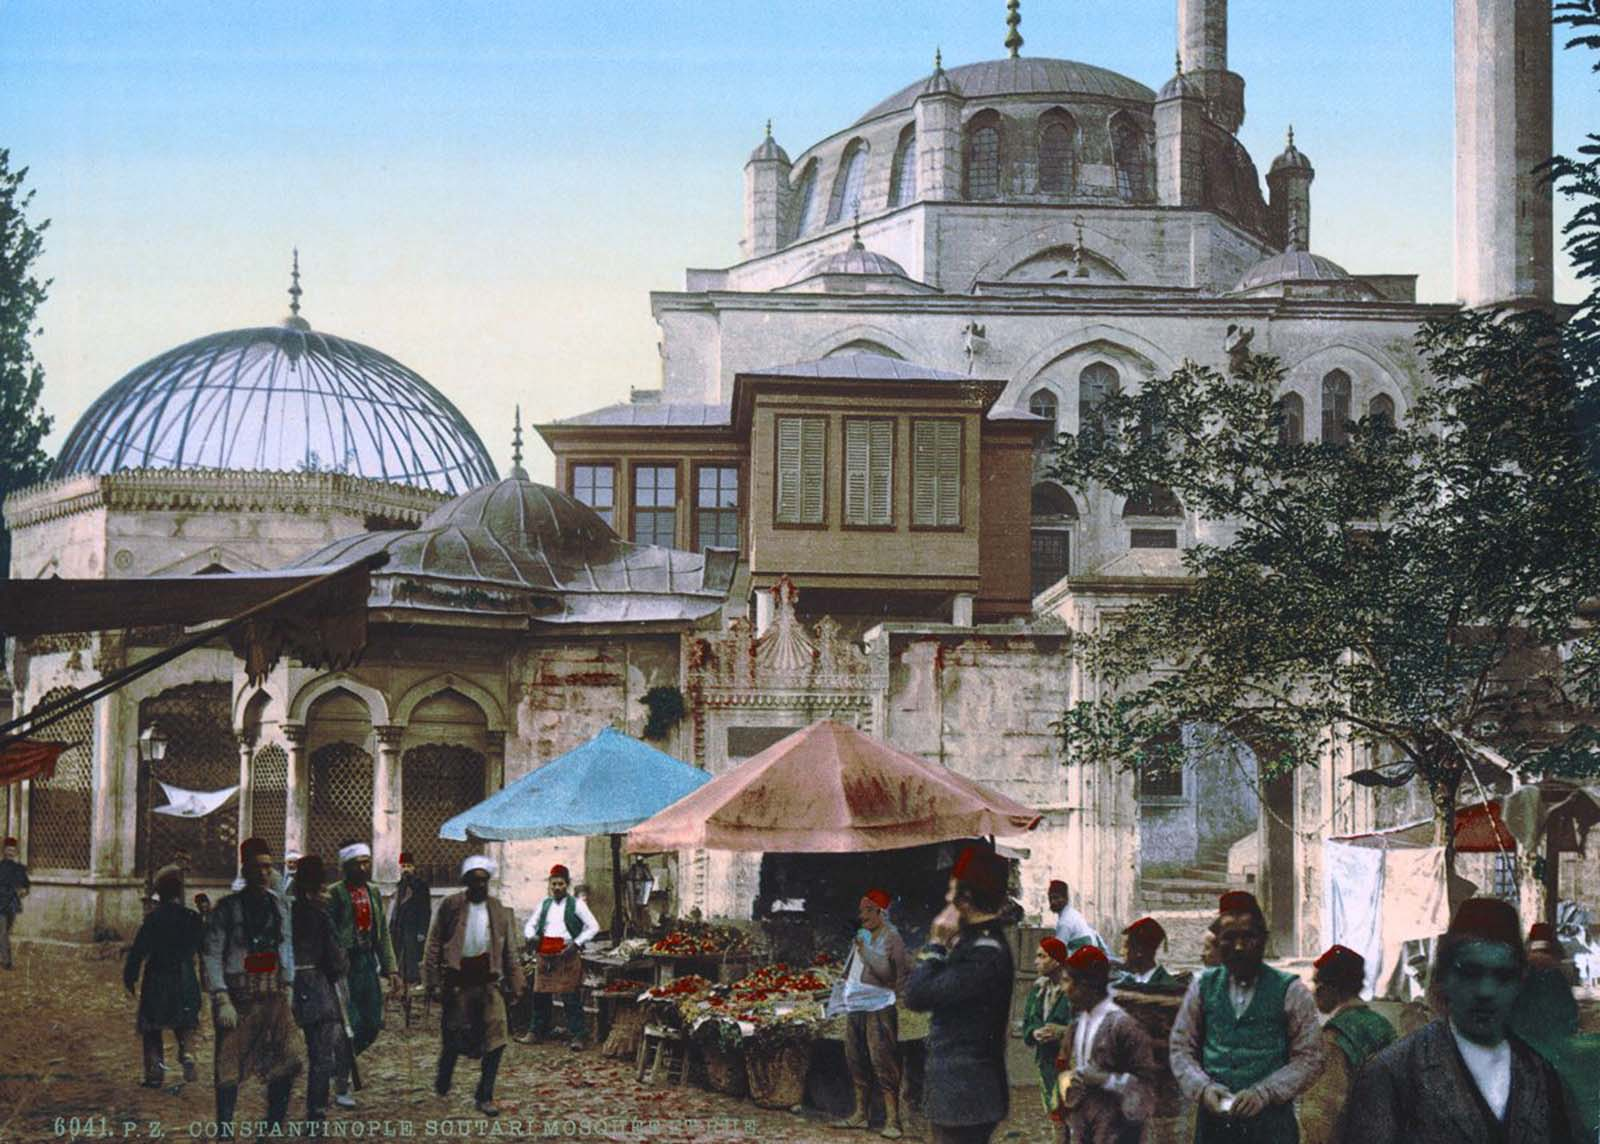 A mosque and street market.